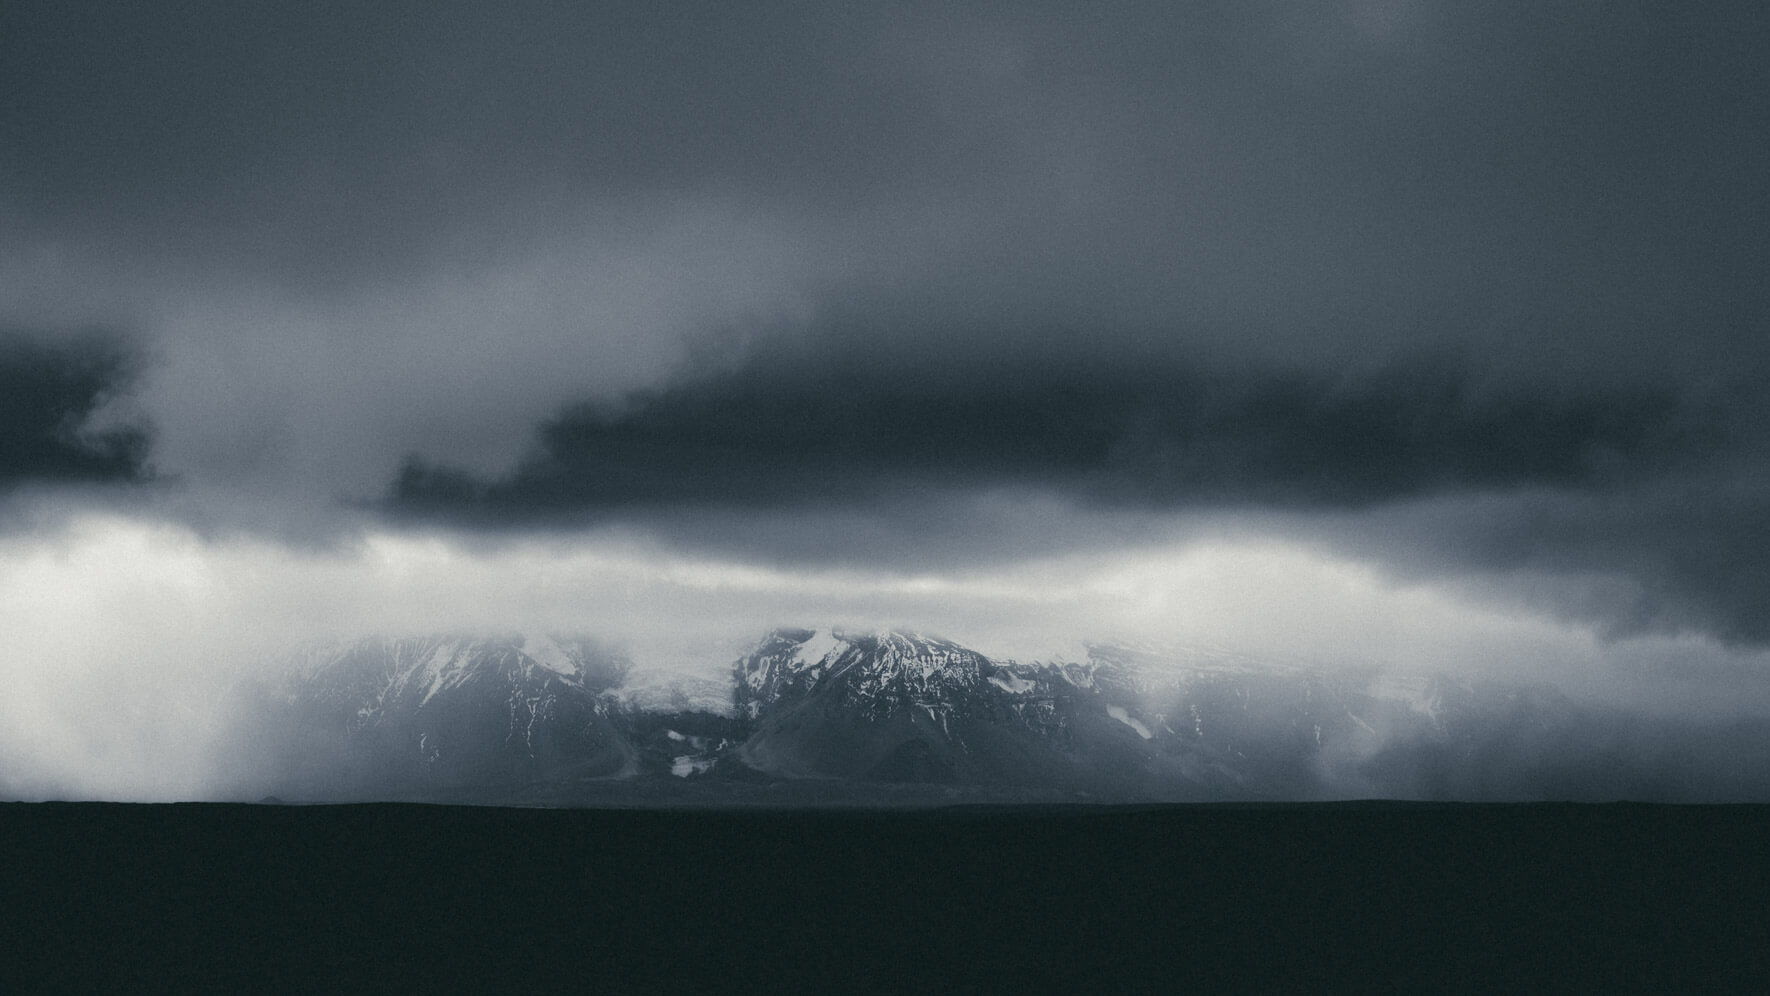 Dramatic clouds over Langjökull glacier and mountain range in Iceland